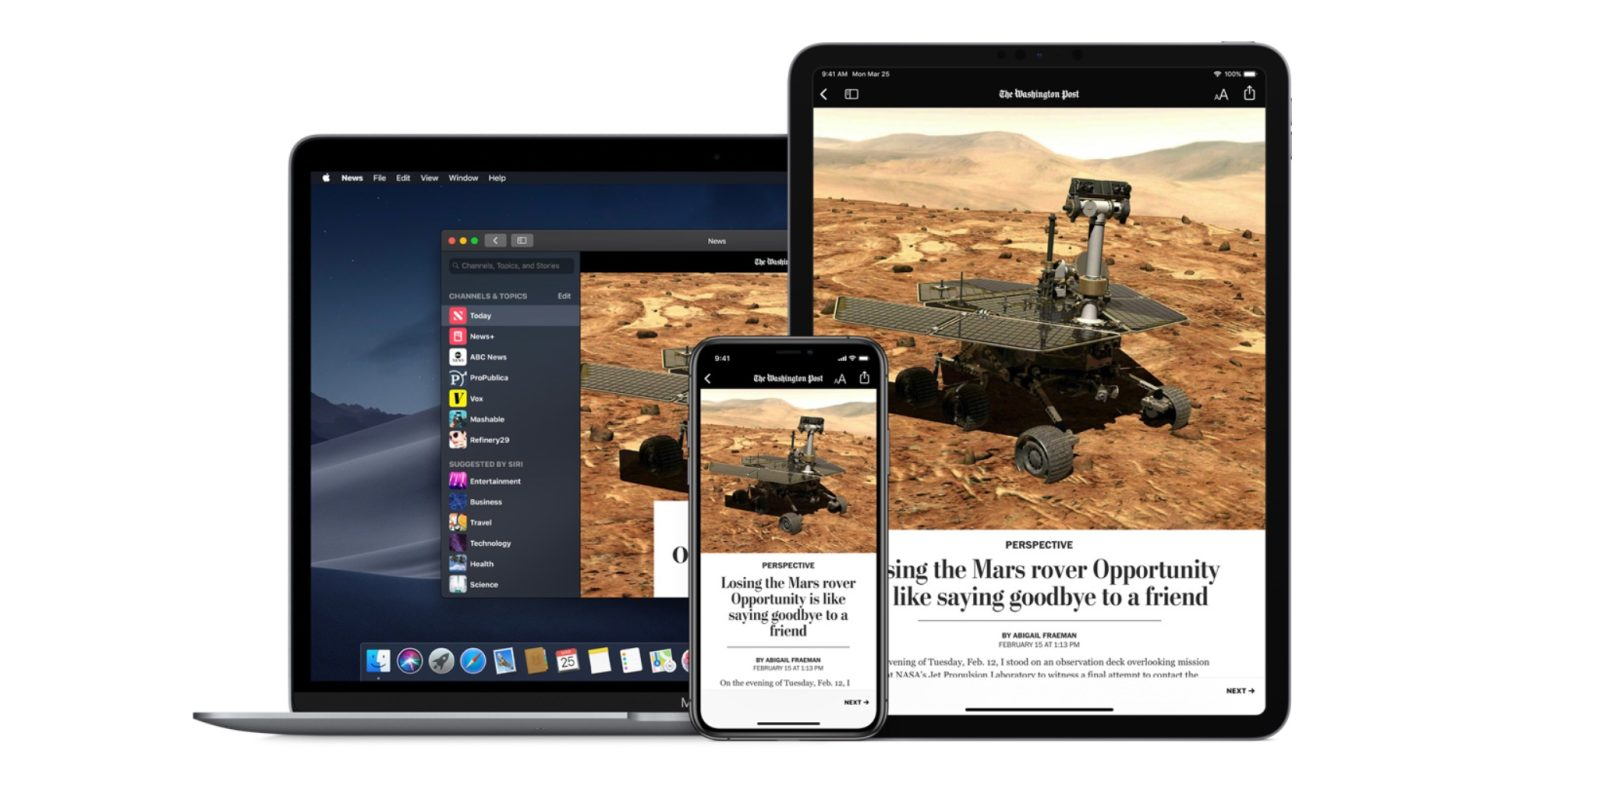 Apple News app crashing for many iPhone and iPad users after